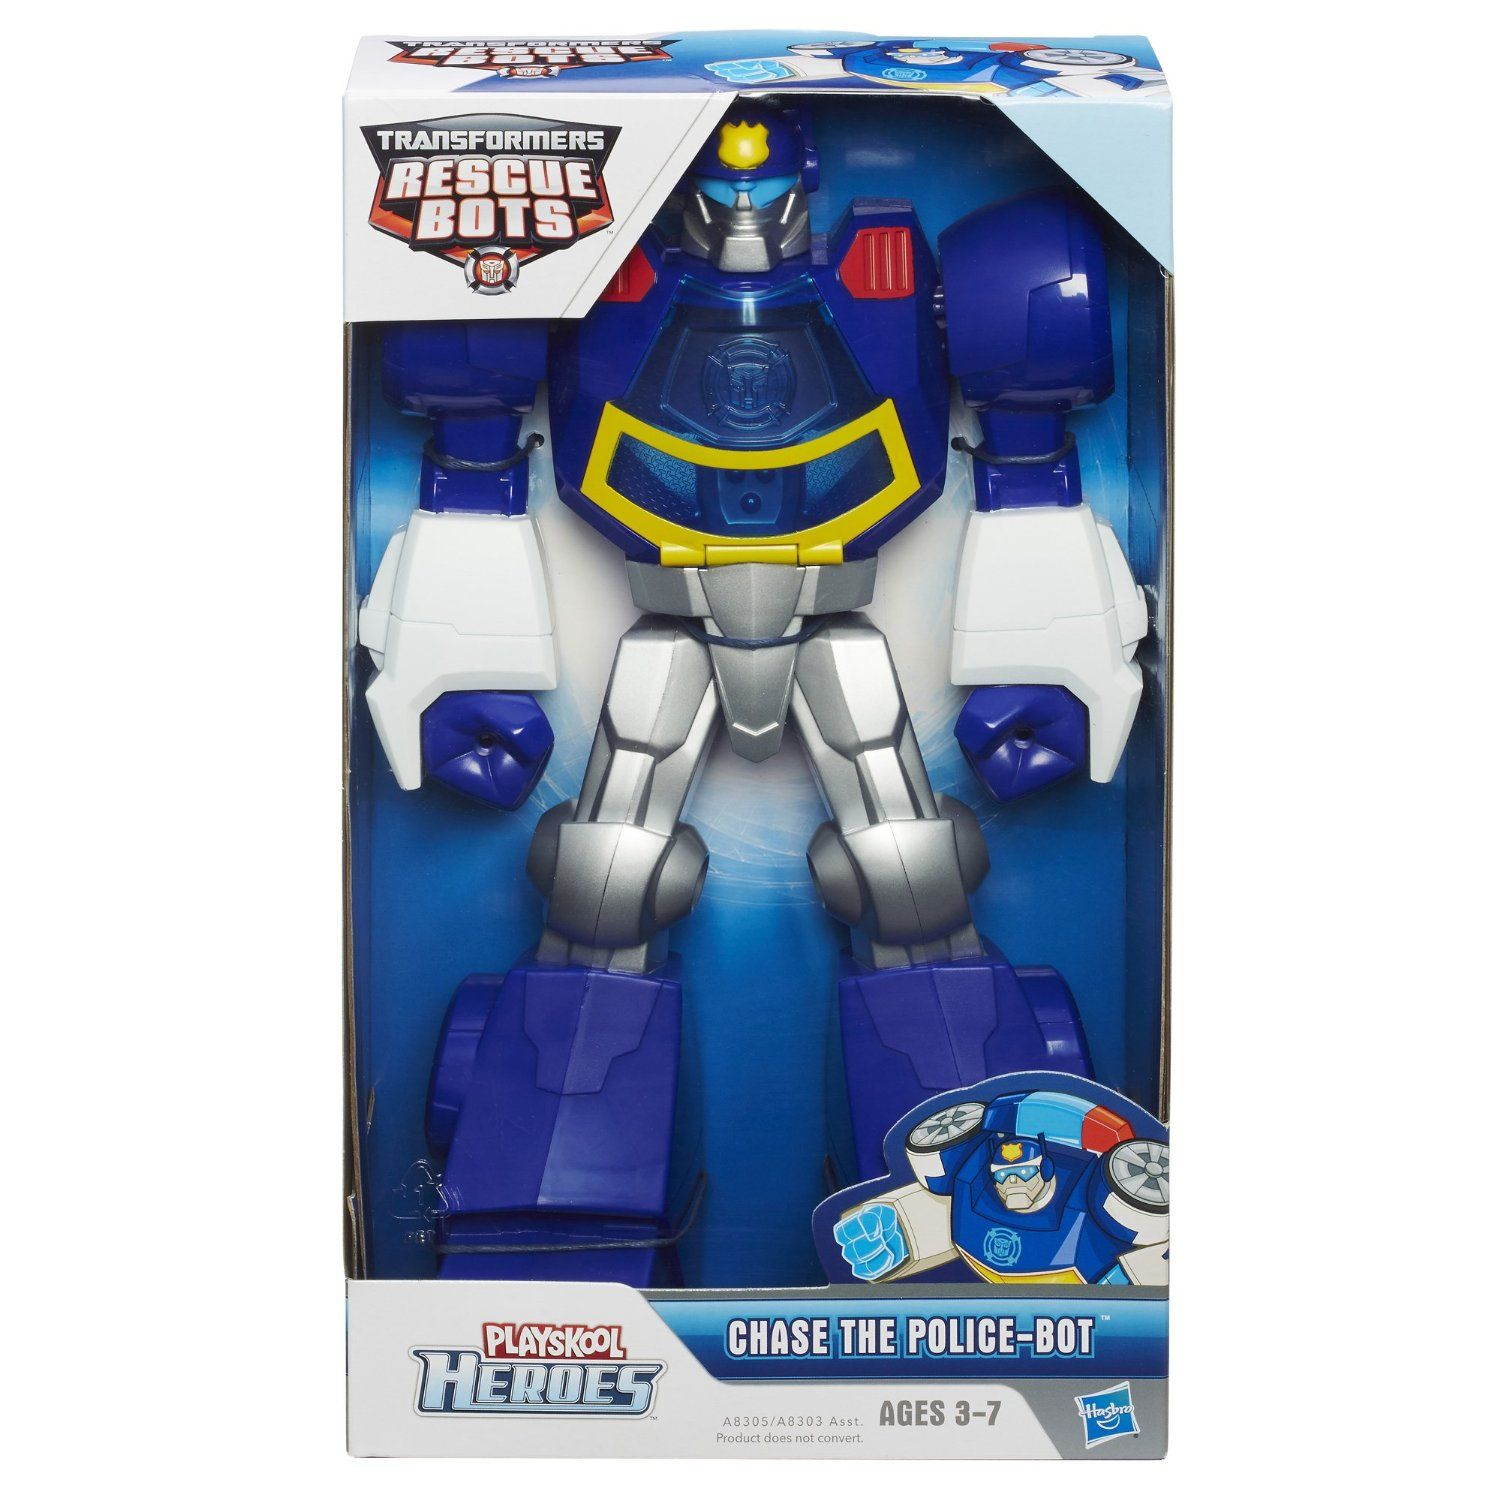 Amazon playskool transformers rescue bots chase the